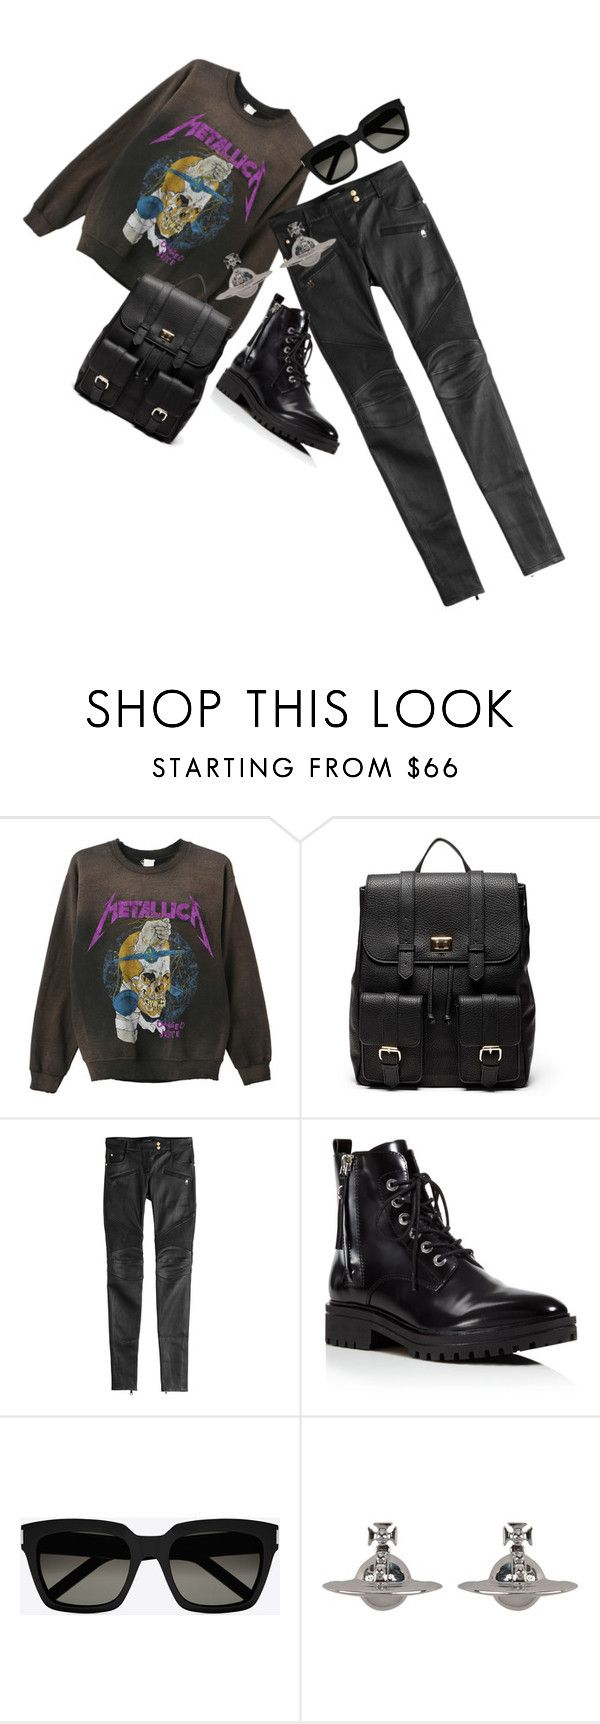 """RocknRolla.."" by evitaom on Polyvore featuring MadeWorn, Sole Society, Balmain, Kendall + Kylie, Yves Saint Laurent and Vivienne Westwood"